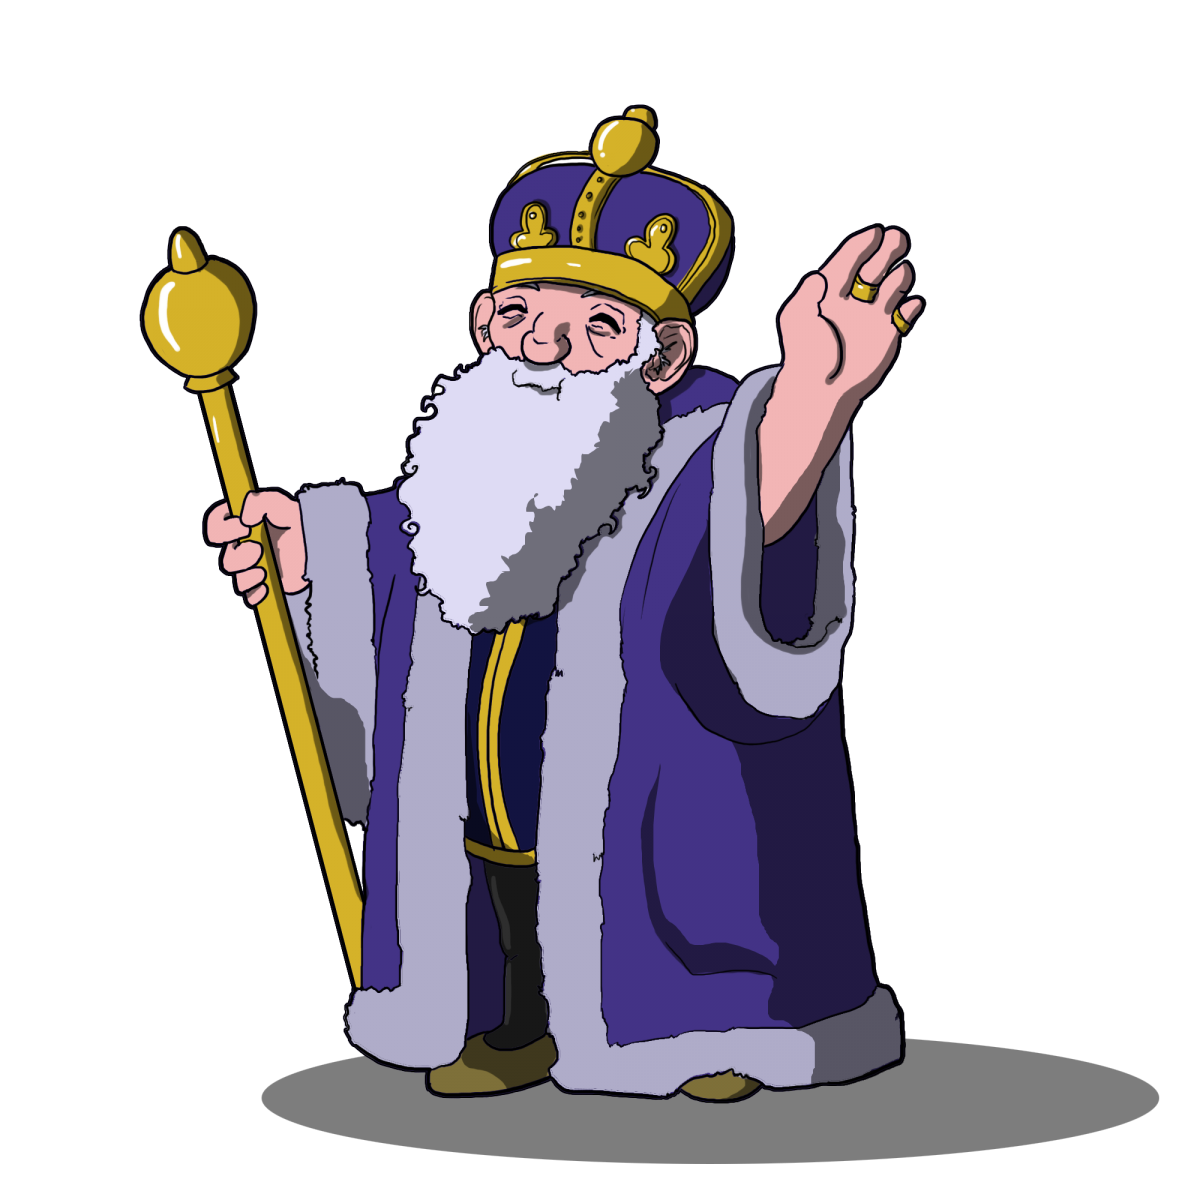 Free on dumielauxepices net. Clipart ruler king